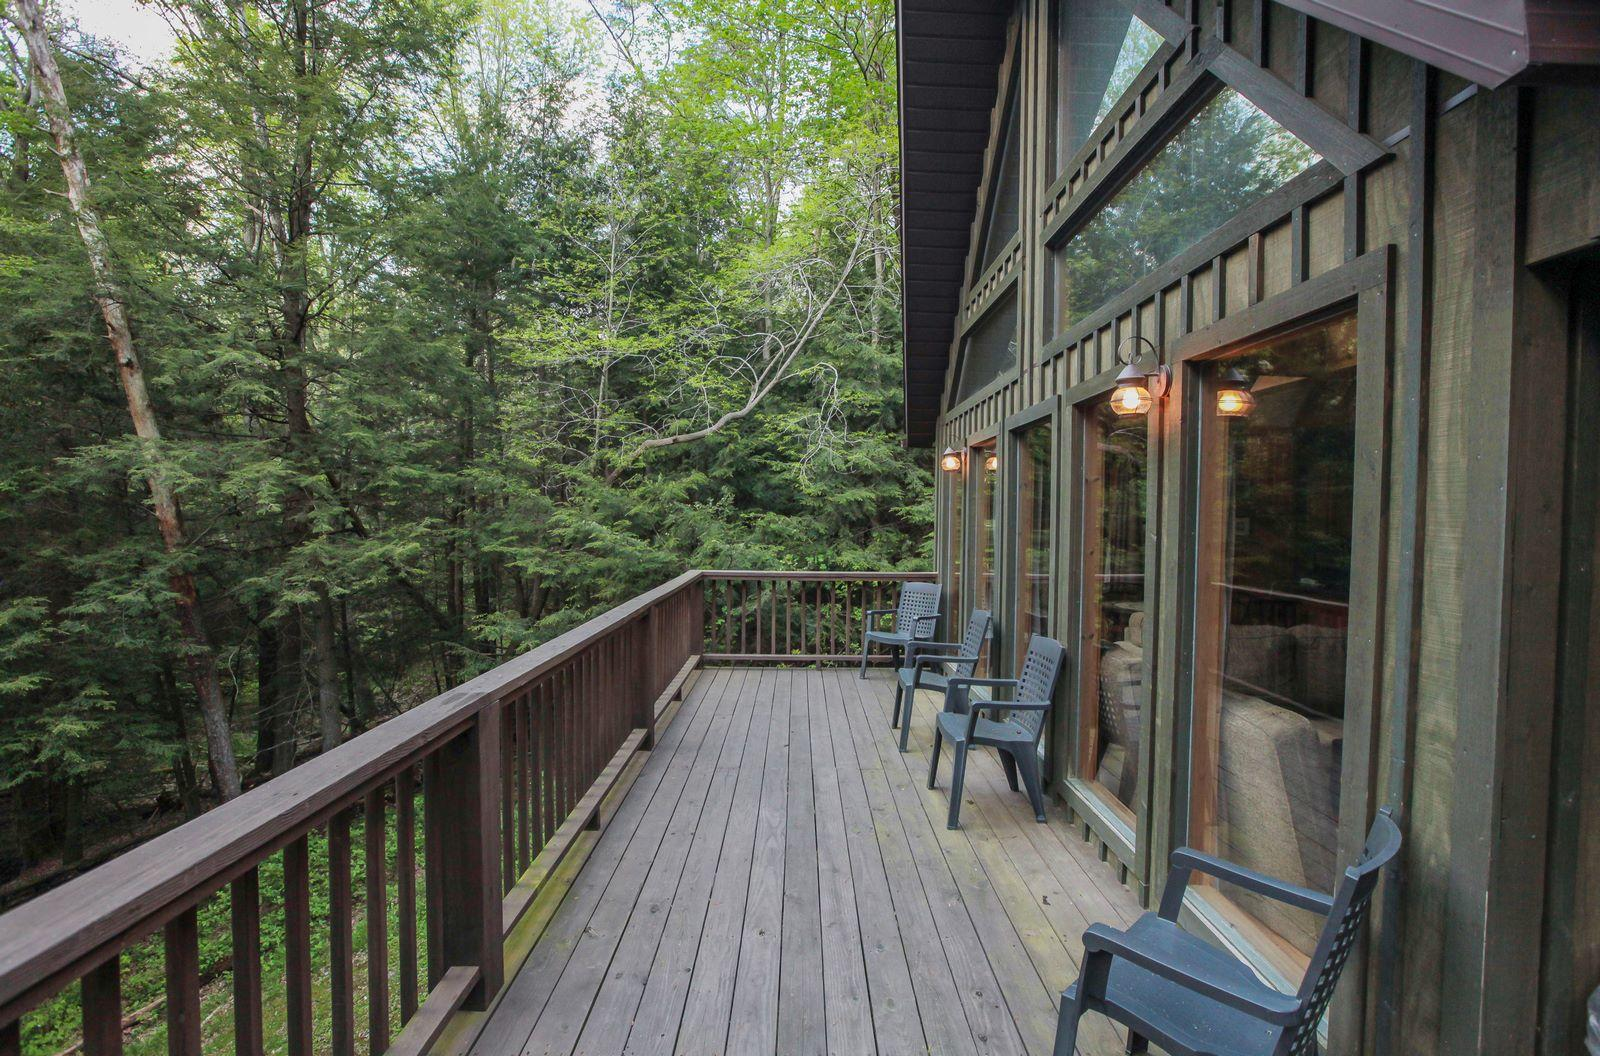 Old Man S Cave Zip Code : Chalets in hocking hills logan ohio oh localdatabase